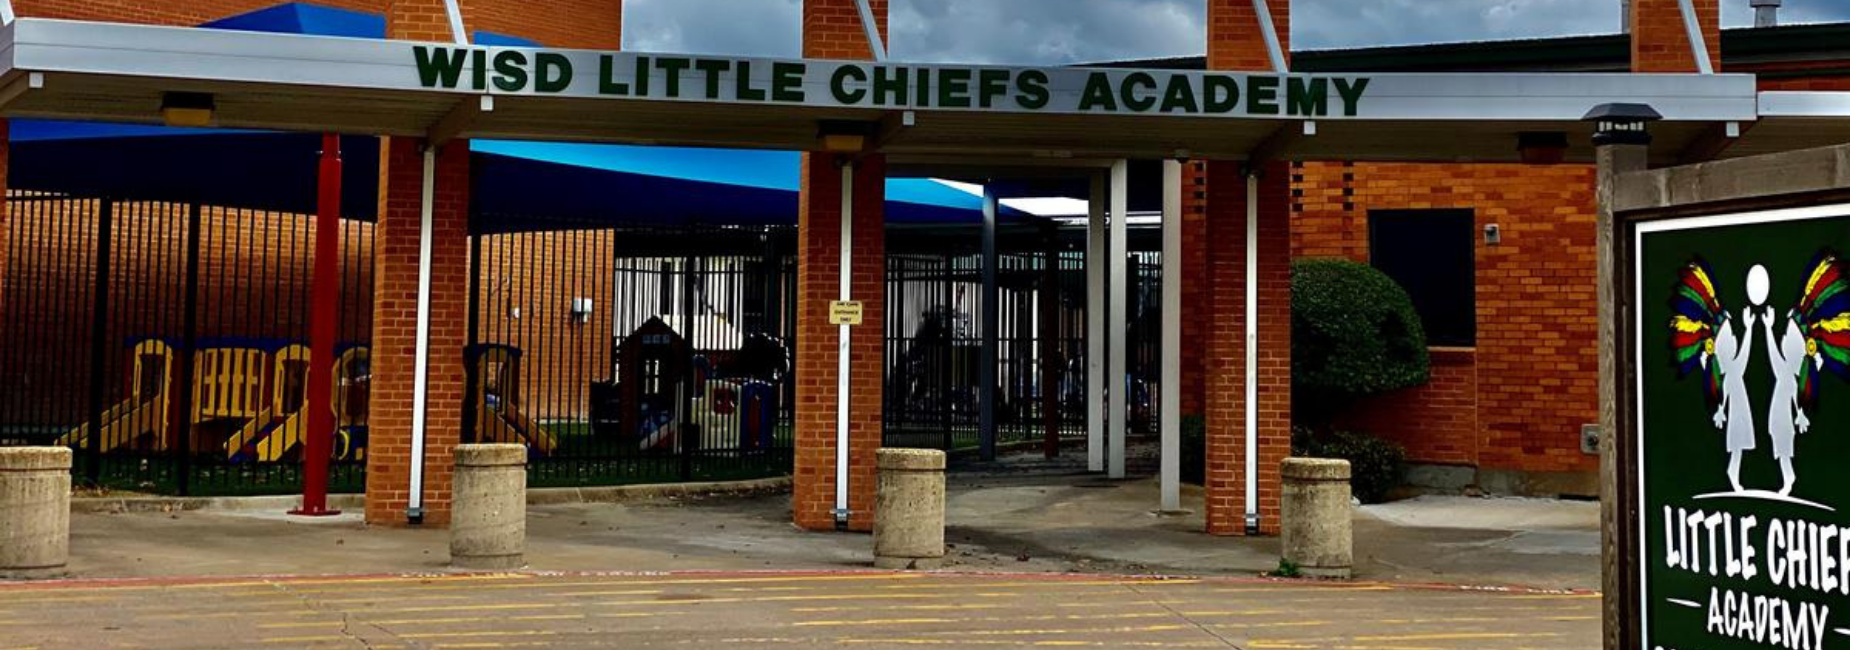 street view of Little Chiefs campus